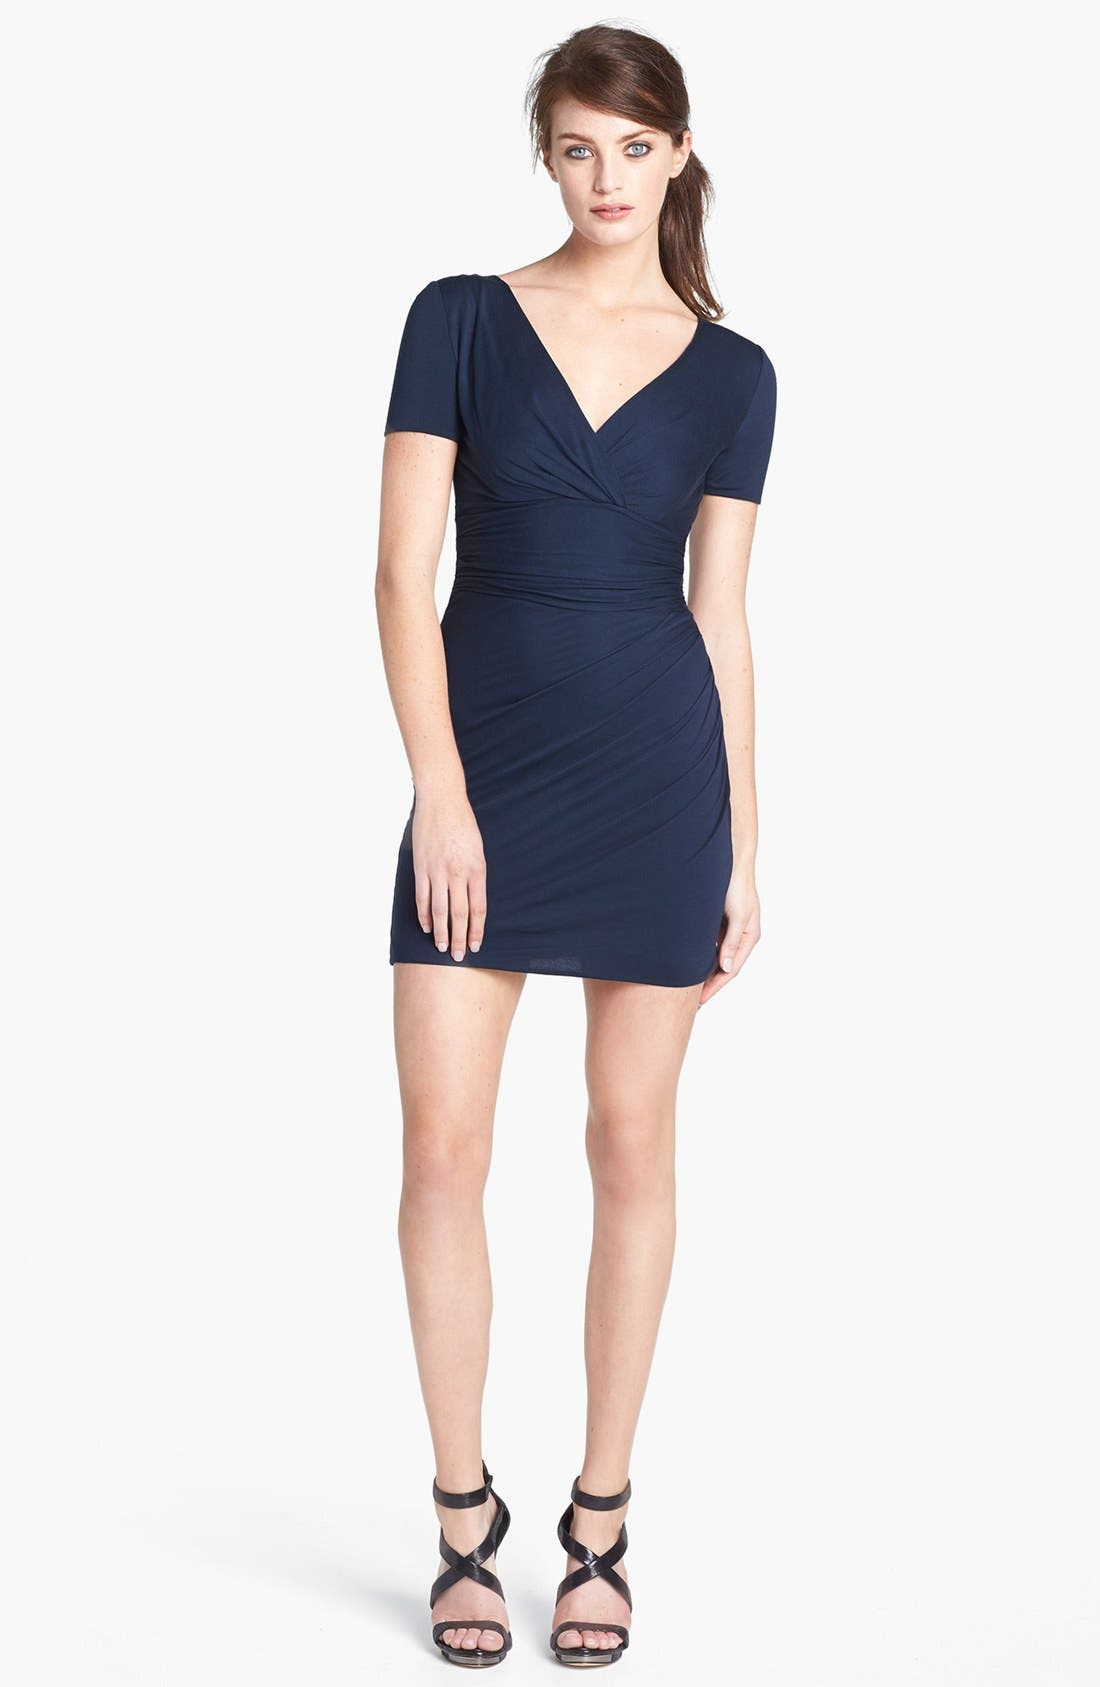 Alternate Image 1 Selected - Diane von Furstenberg 'Chelsea' Knit Dress